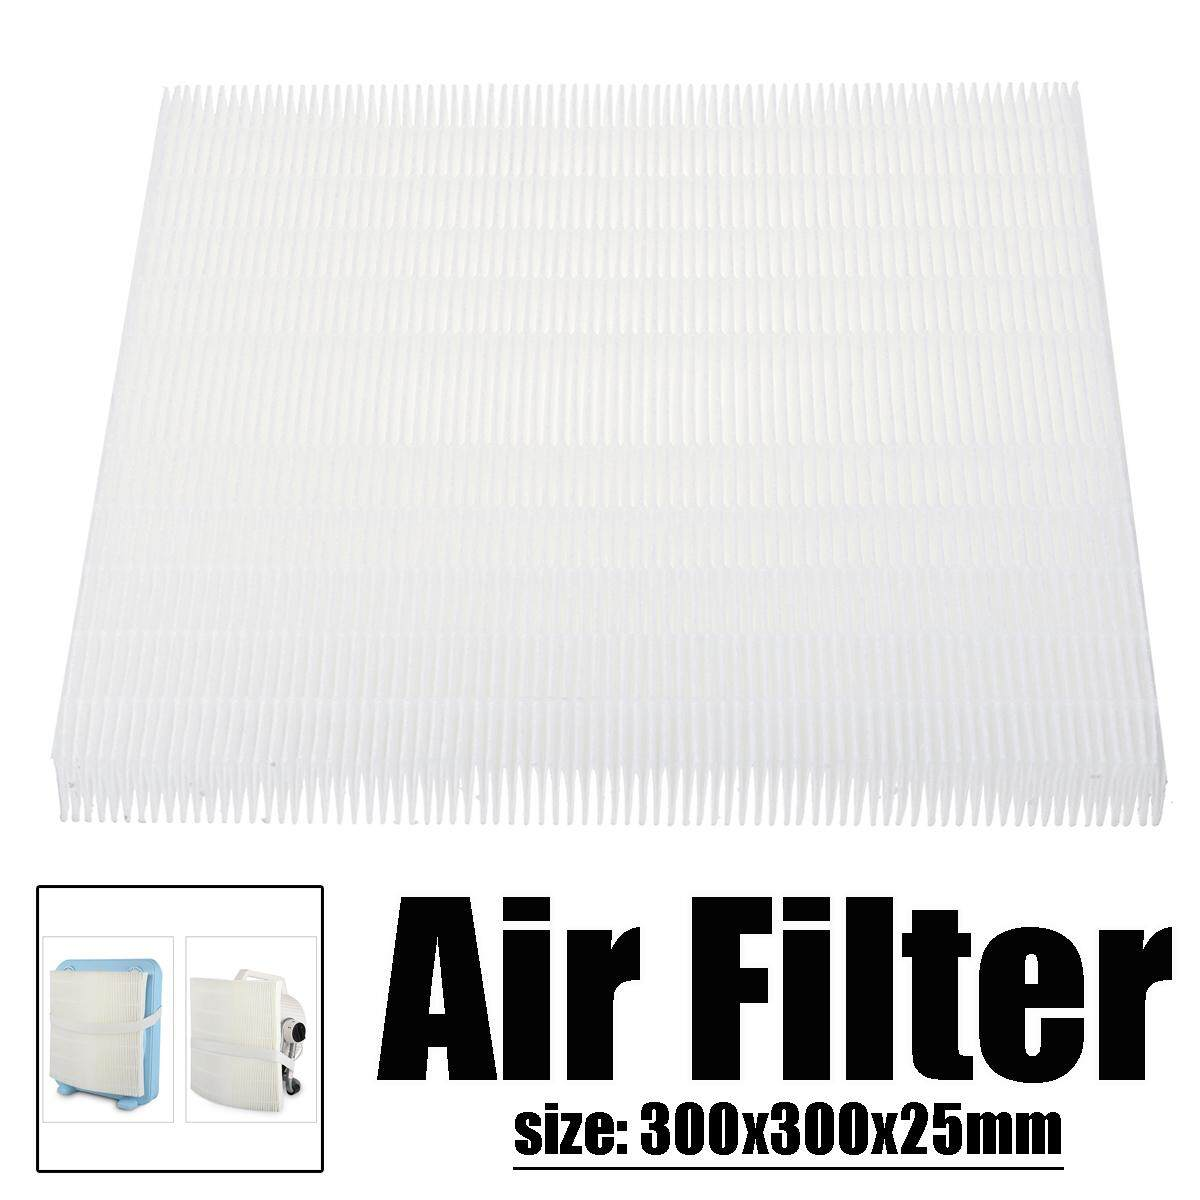 Diy Air Filter Hepa Dust Filter For Air Conditioner Cold Fan Air Cleaner Fan By Threegold.